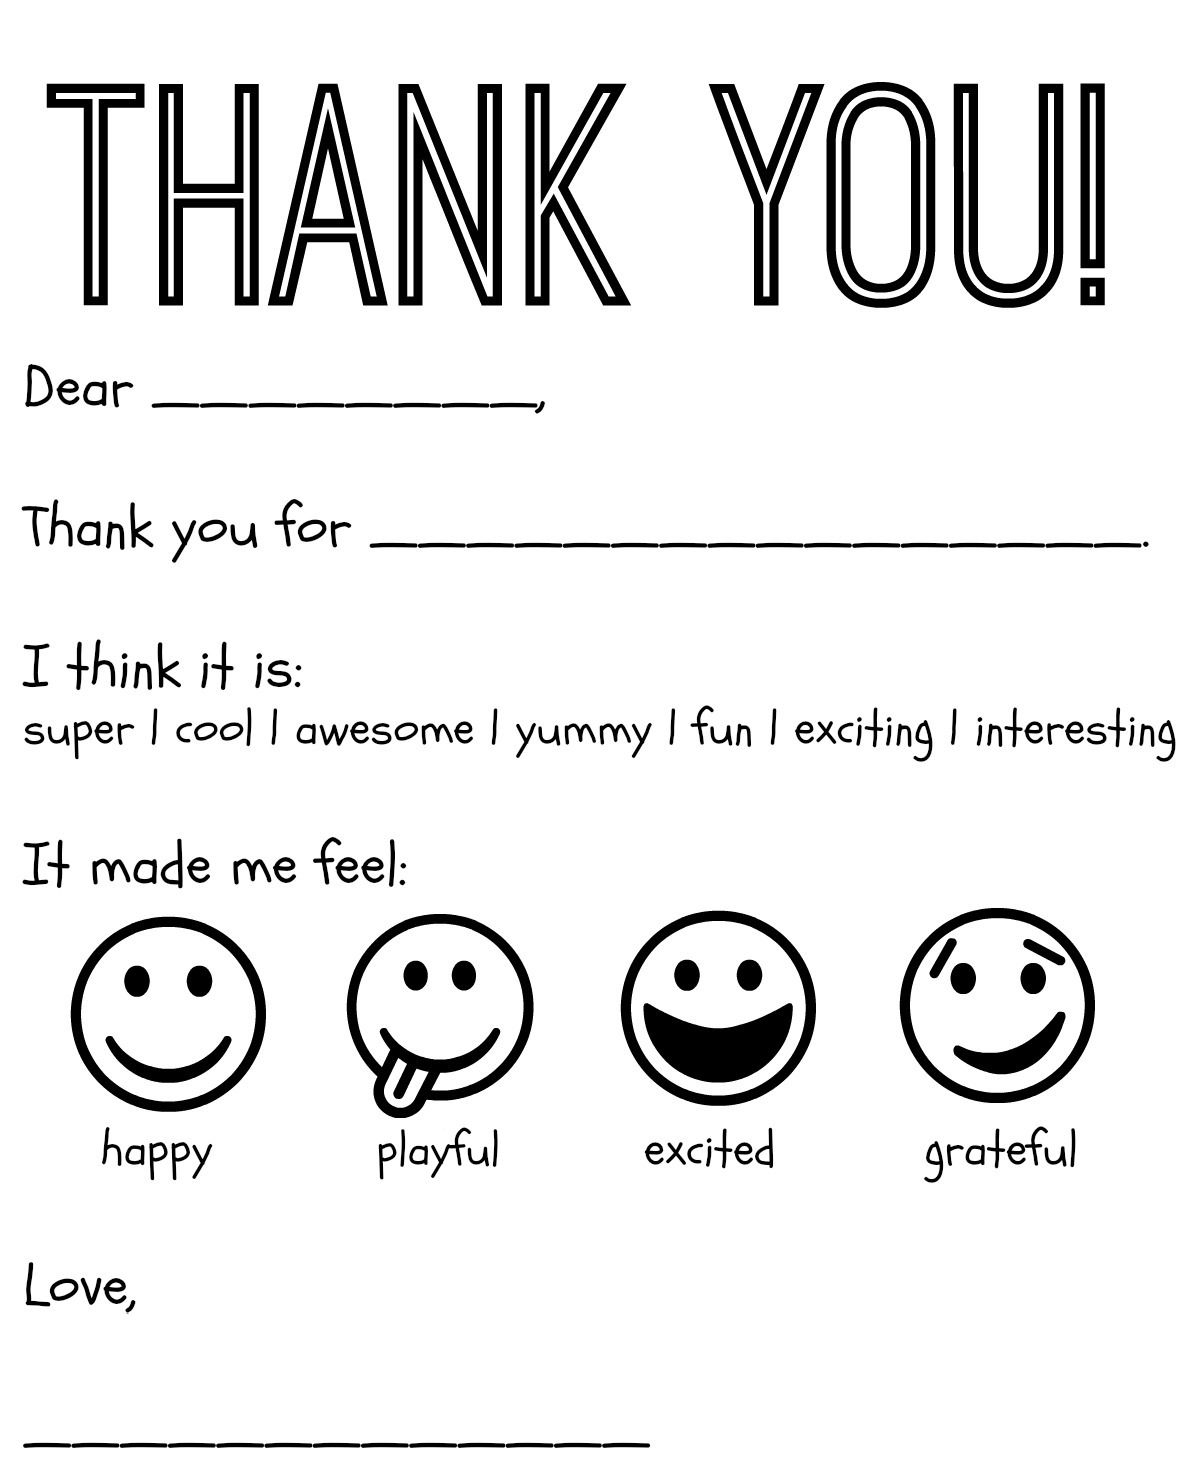 Free Printable Kids Thank You Cards To Color | Thank You Card - Free Printable Funny Thinking Of You Cards